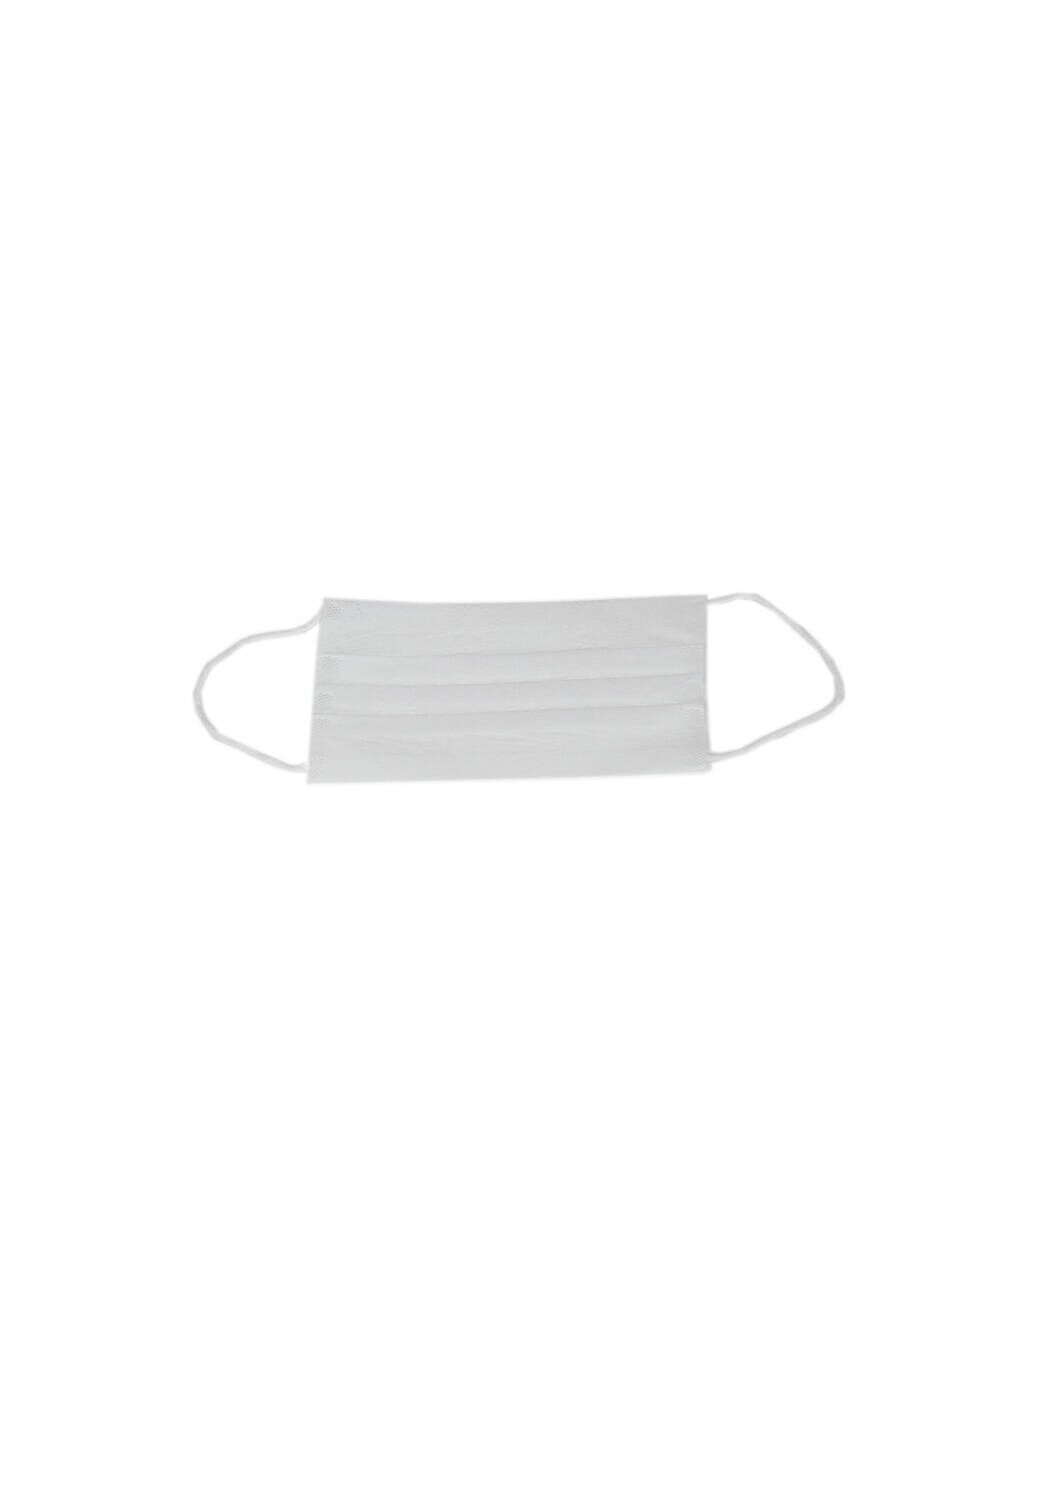 3 Layer Surgical Face Mask White 100 Pieces